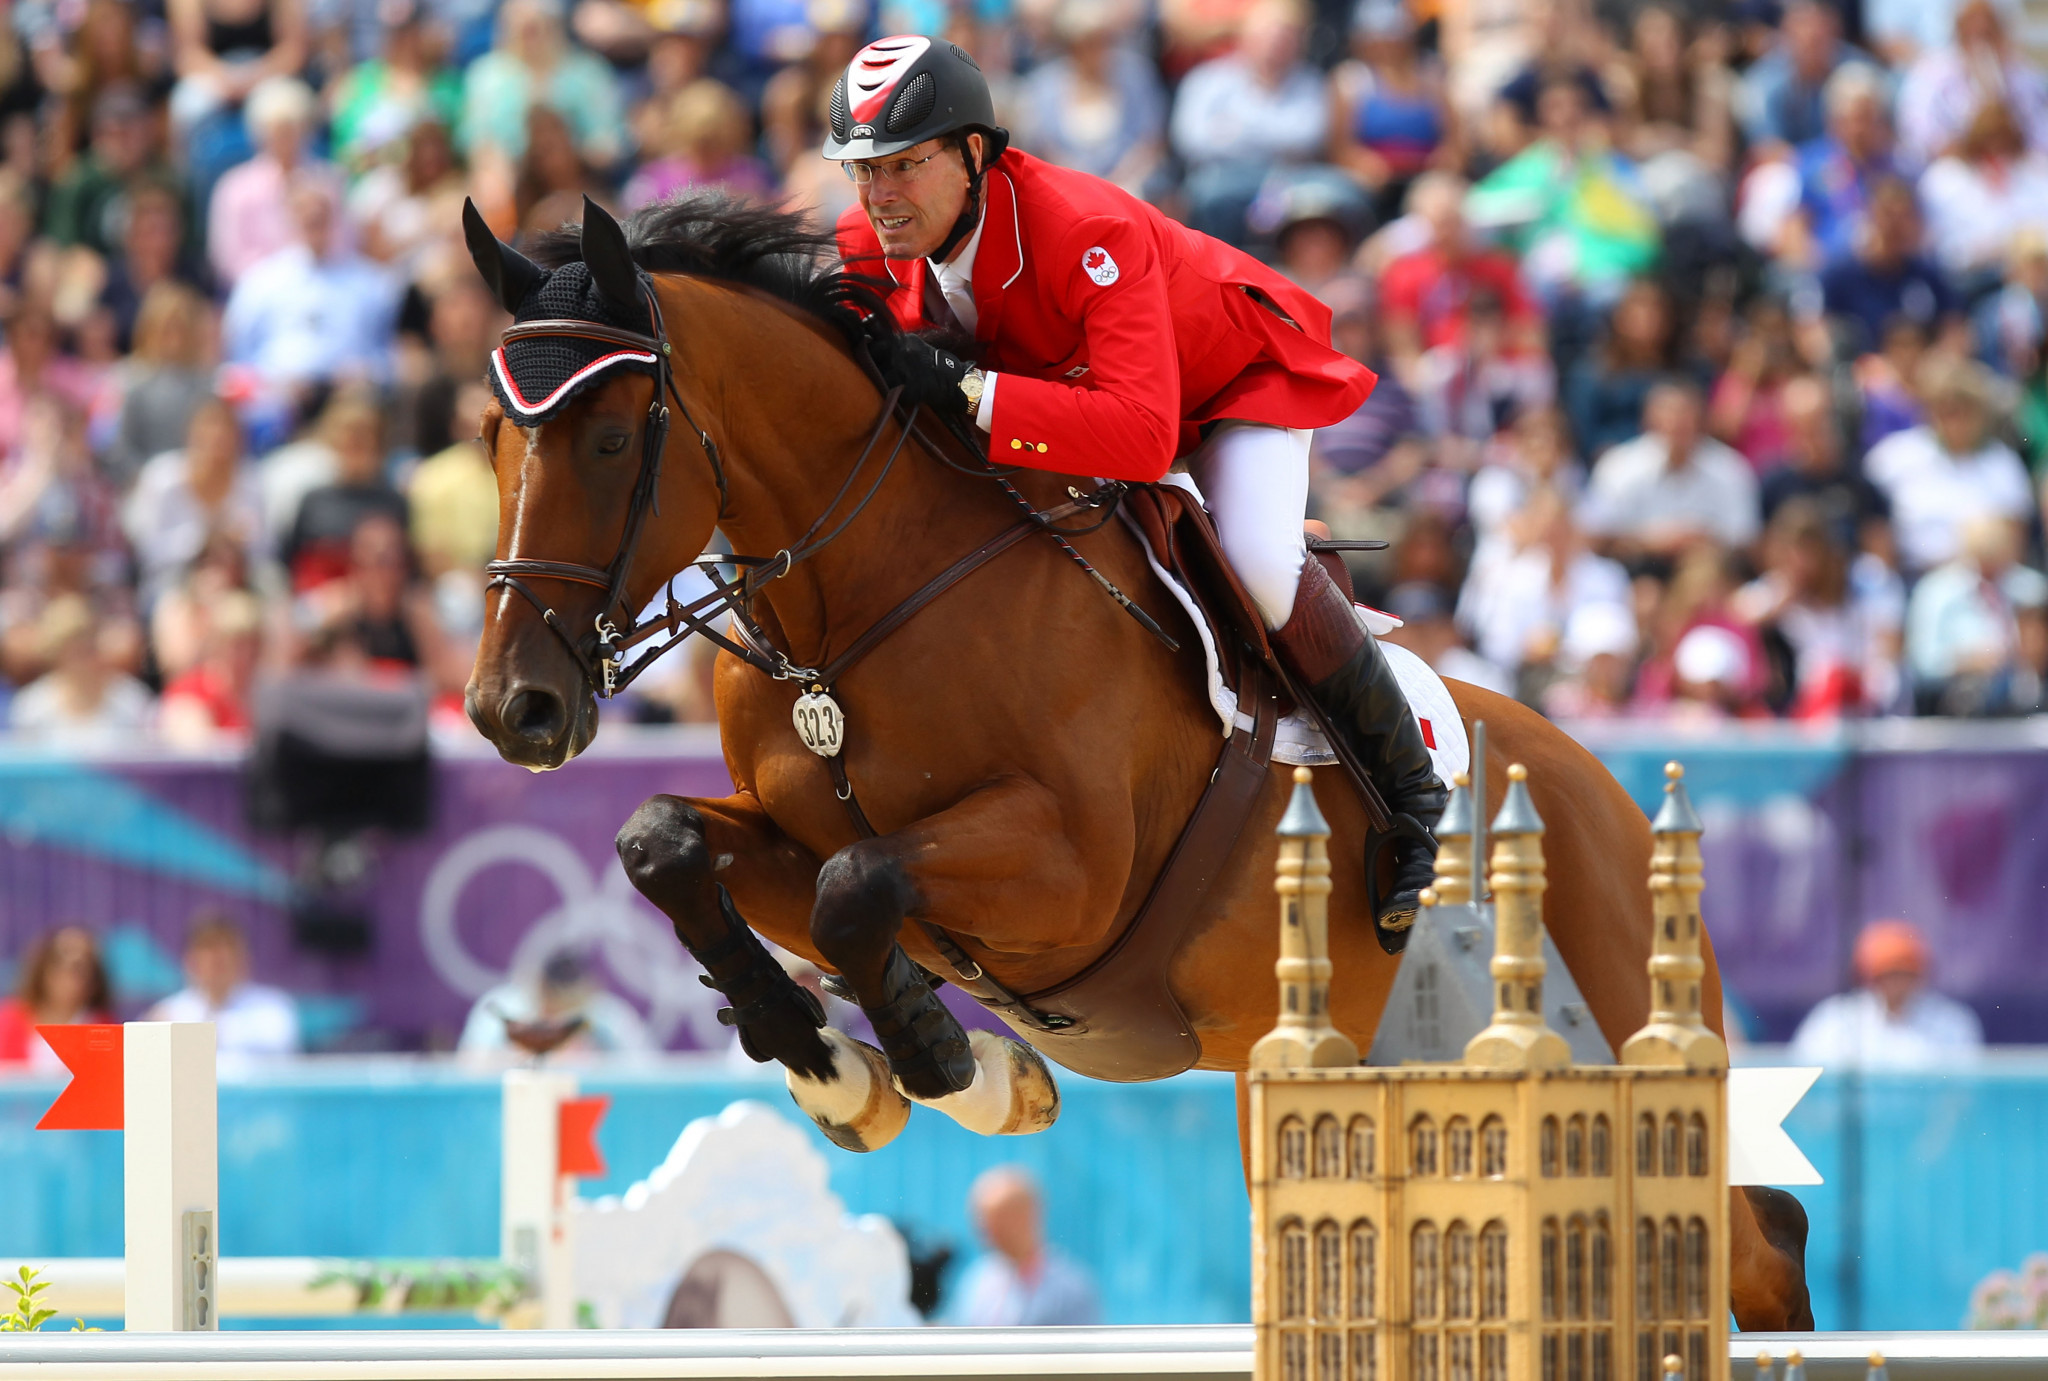 Ian Millar made history after competing at the London 2012 Olympic Games, becoming the only athlete to participate in 10 ©Getty Images